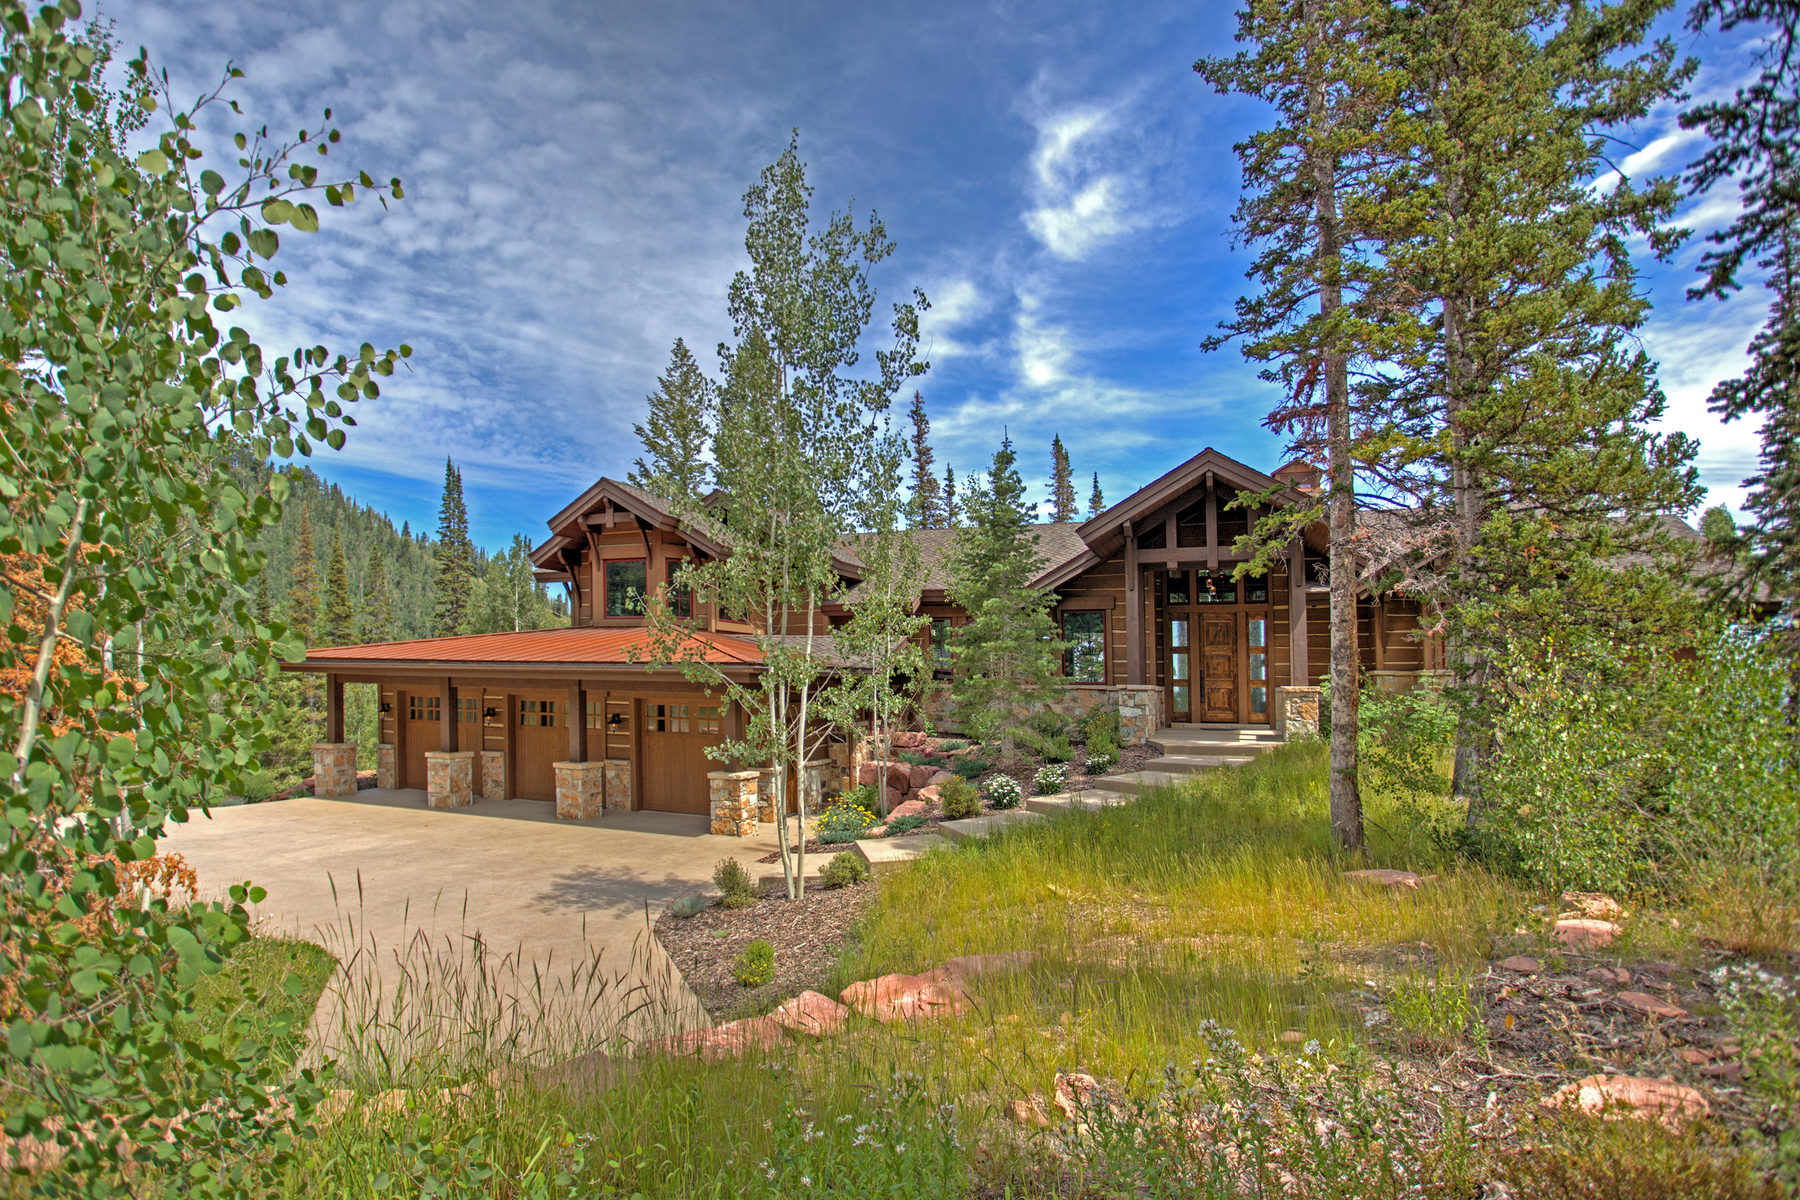 独户住宅 为 销售 在 Top of the Mountain Retreat 137 White Pine Canyon Rd Lot 130 Park City, 犹他州 84098 美国